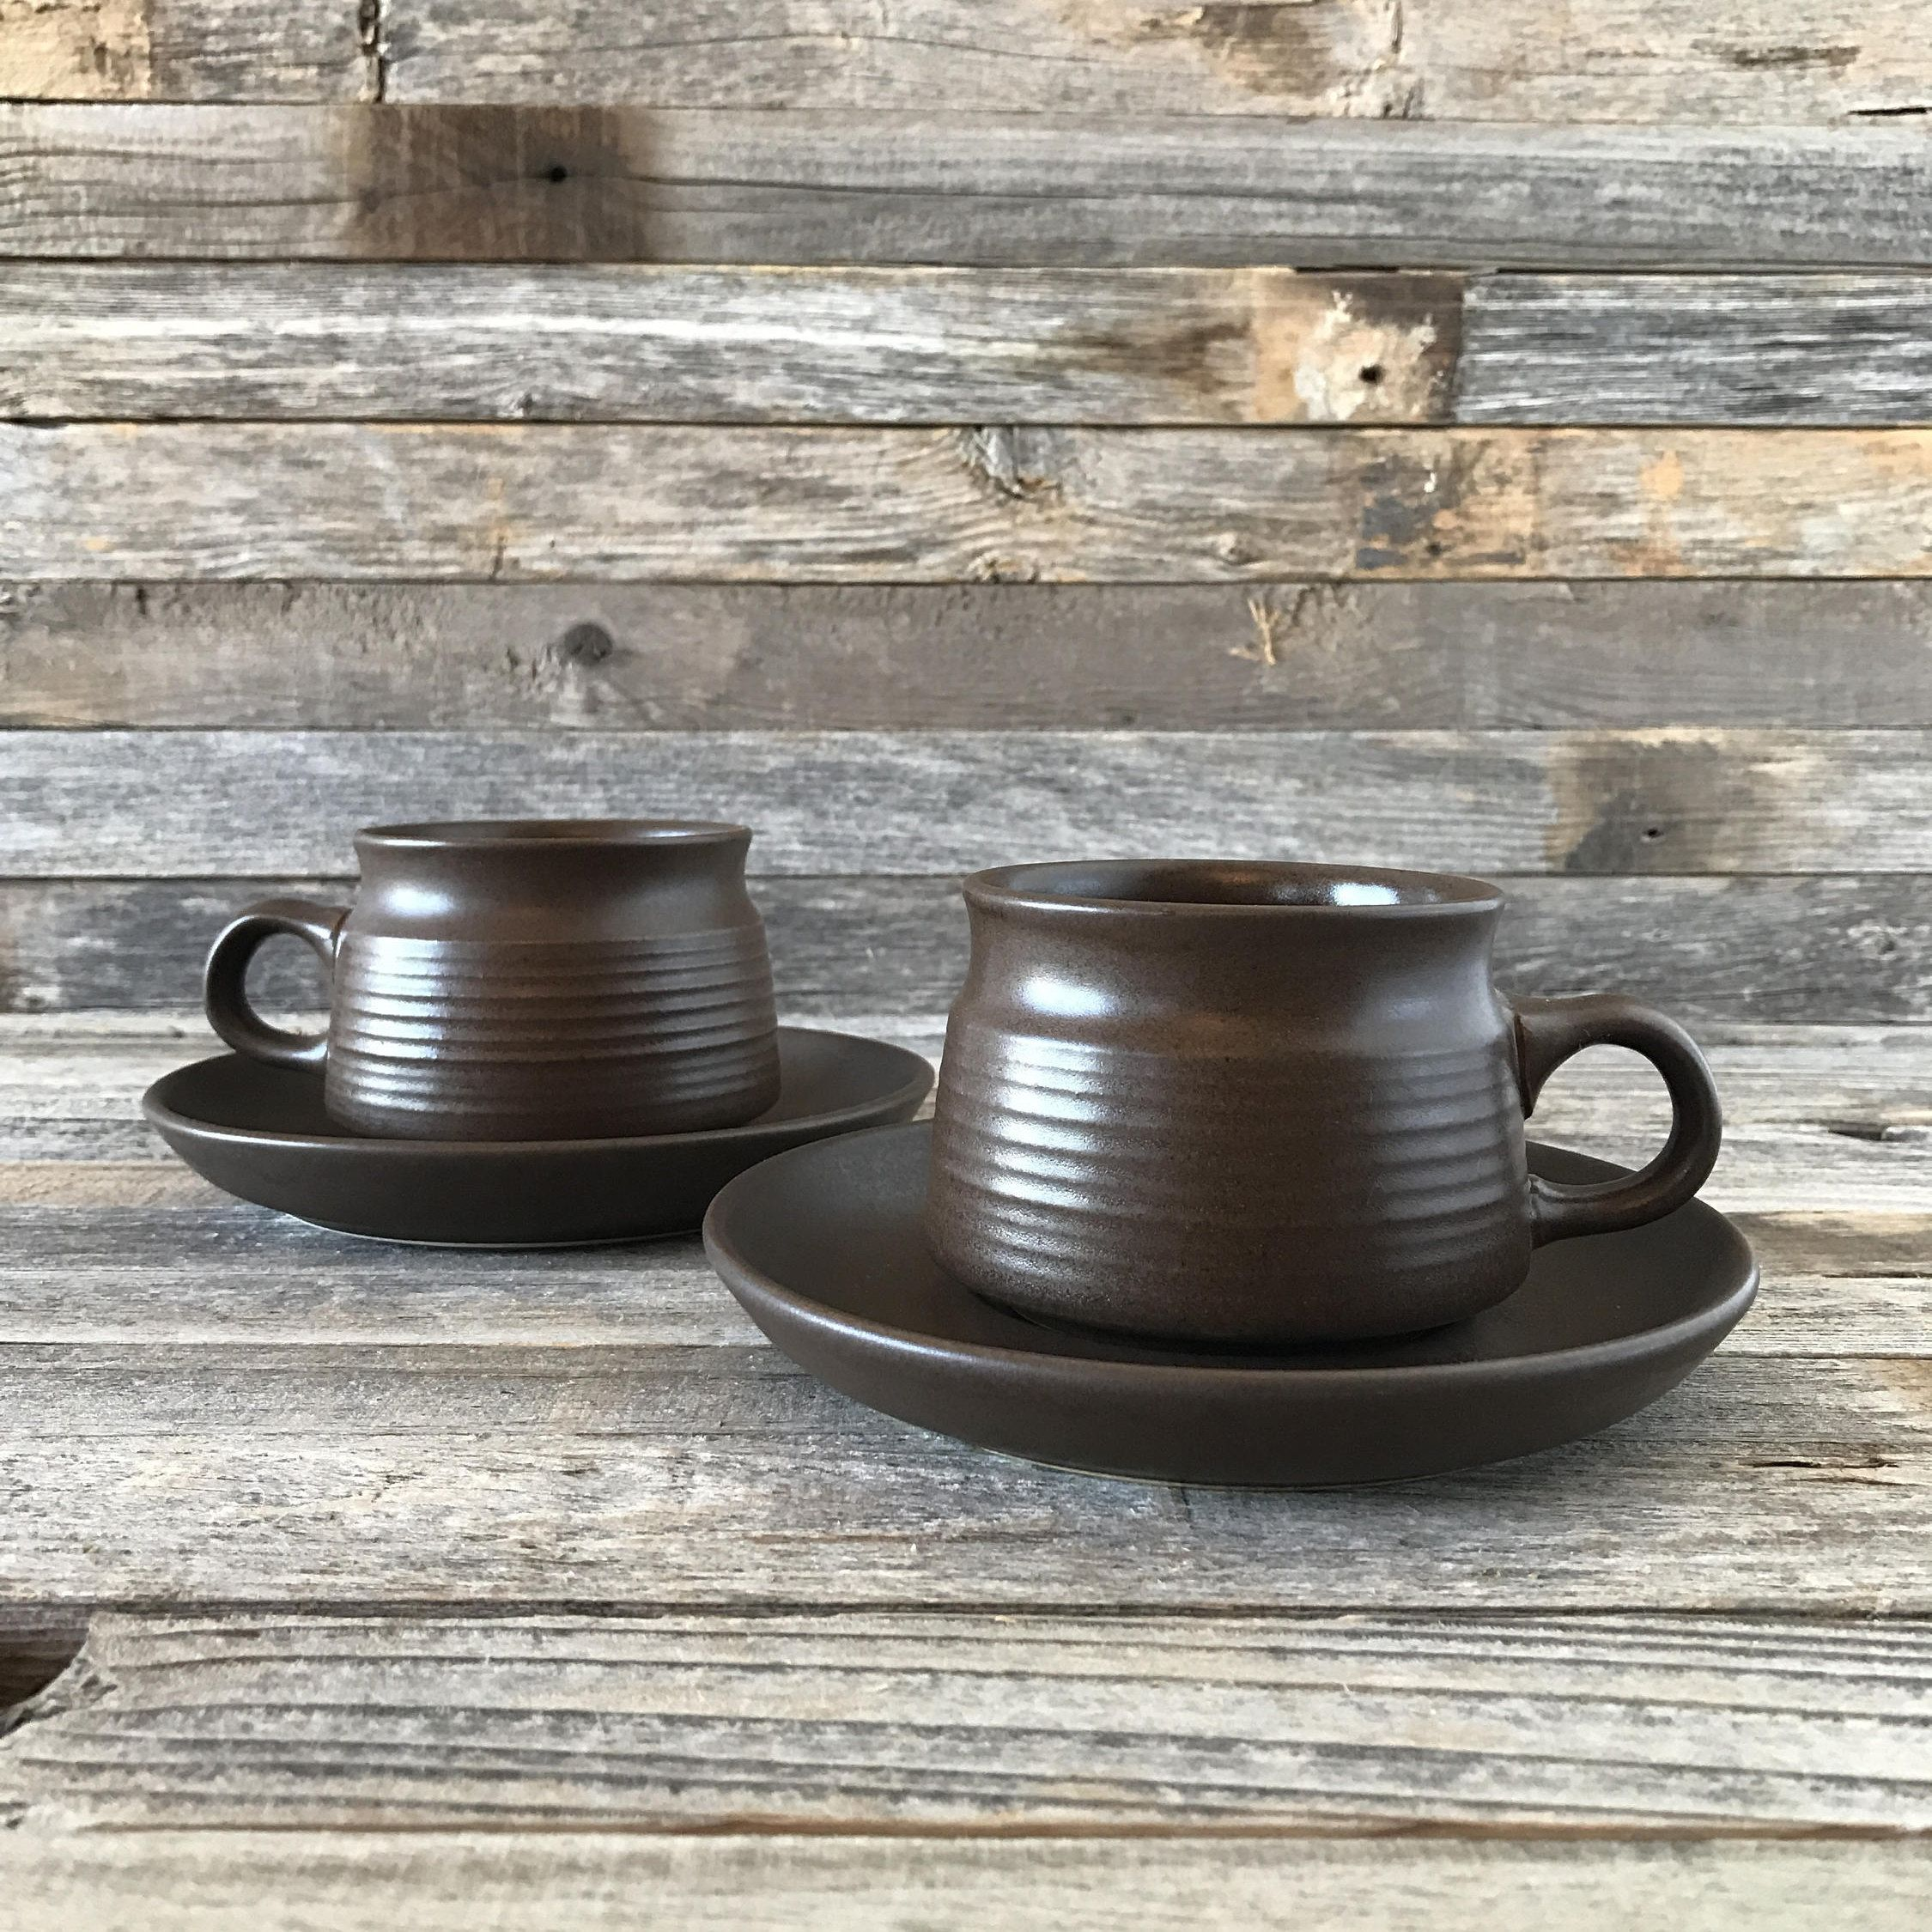 Set of 2 vintage stoneware cups with matching saucers Mayflower by Denby. Dark brown inside and out with a simple shape and ribbed detail on the cup. & Set of 2 Vintage Denby Mayflower Flat Cup And Saucer Denby ...